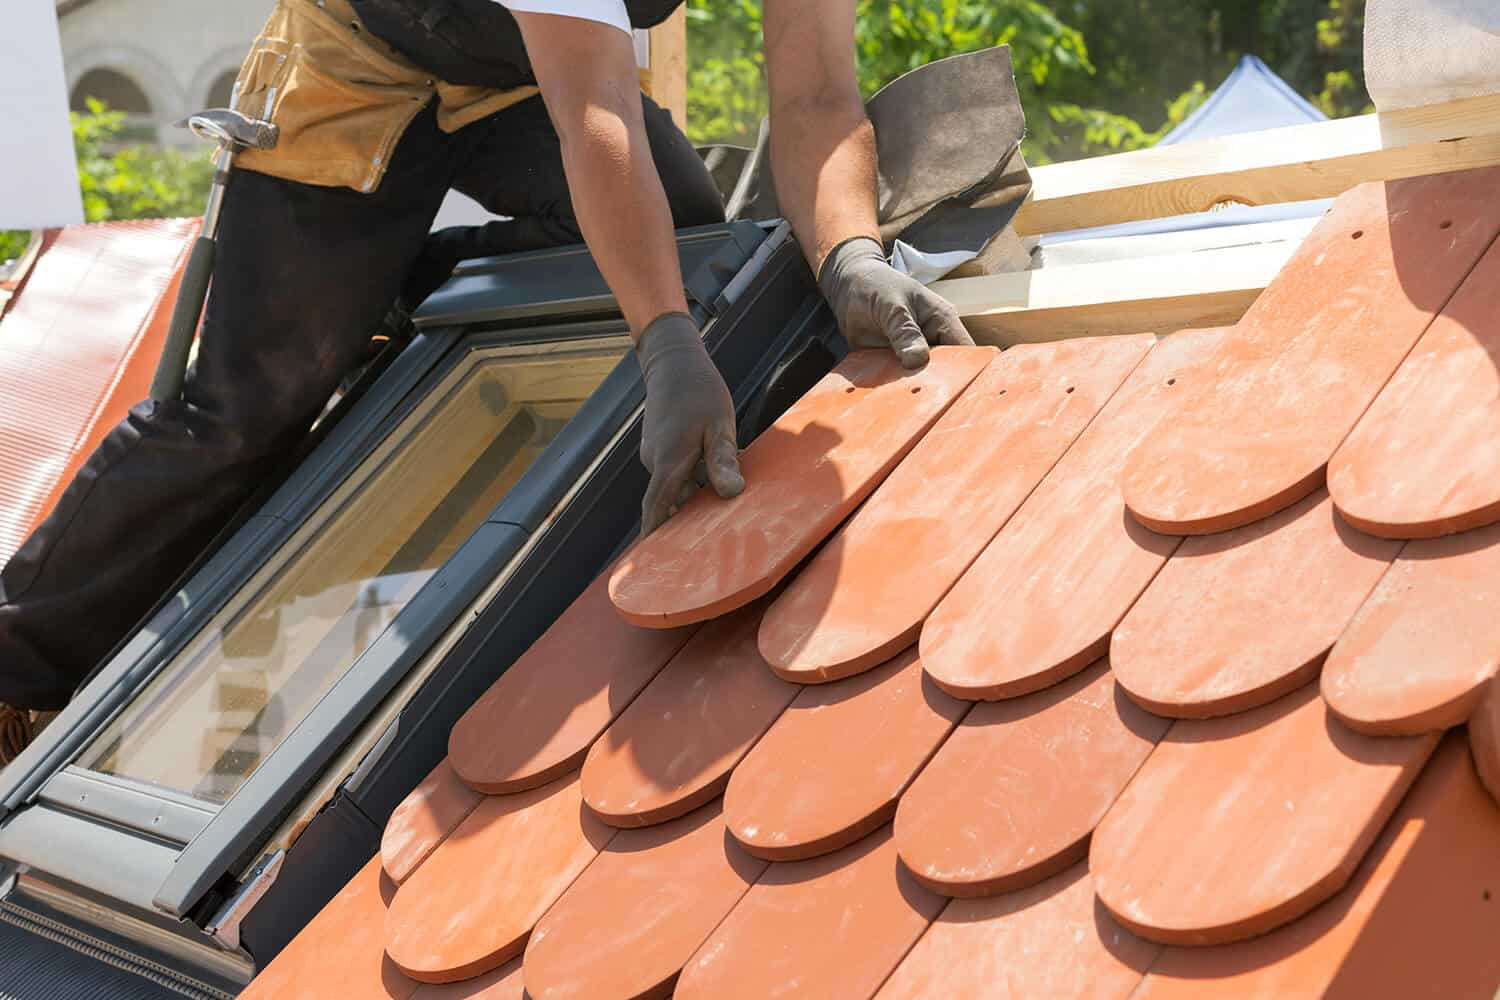 Can You Cut Roof Tiles With an Angle Grinder